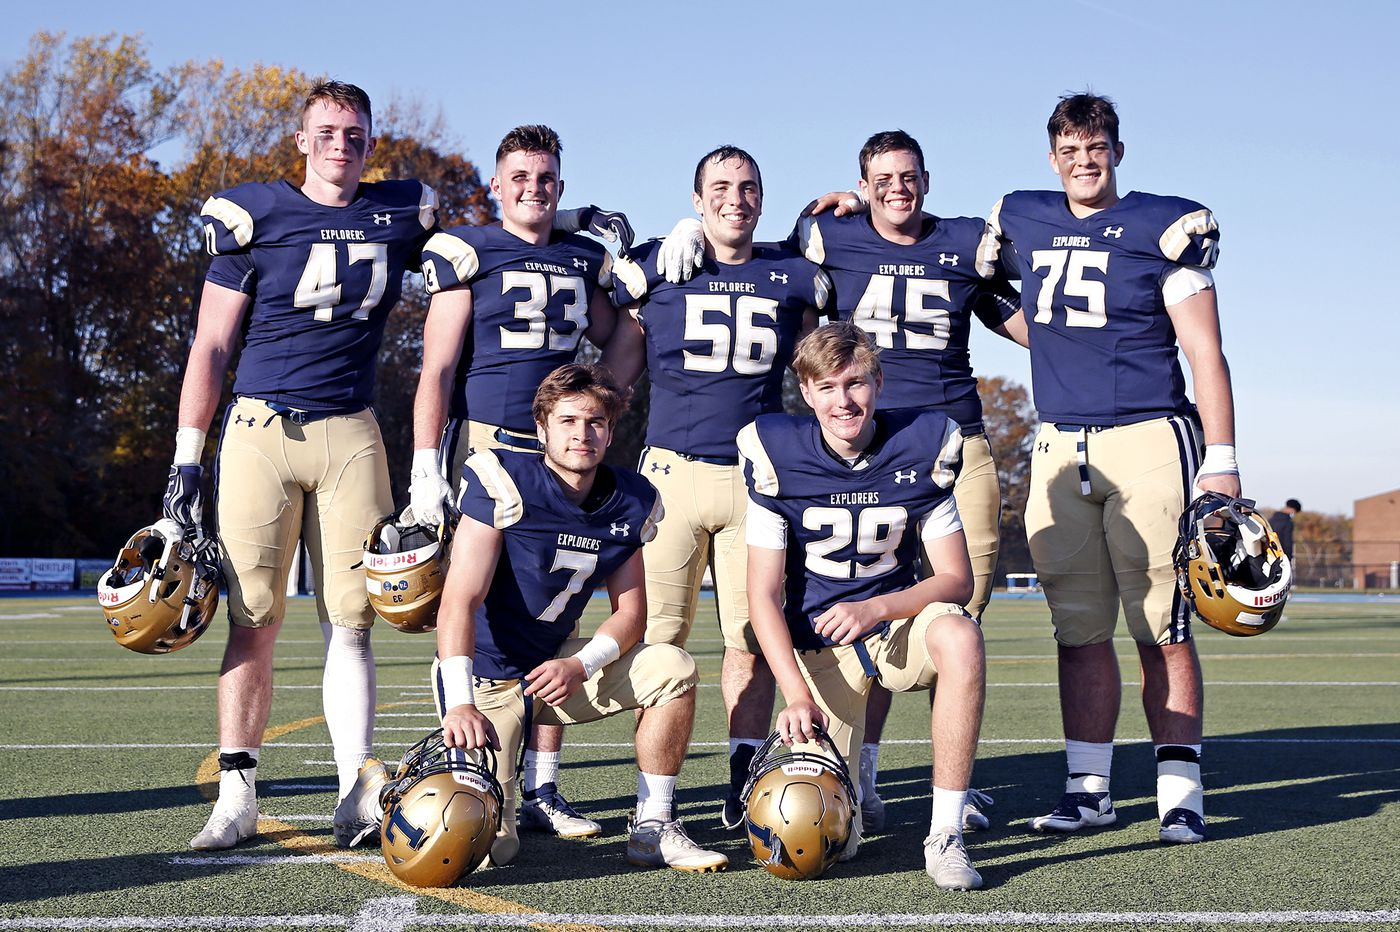 Band of 'brothers' carried La Salle through special football season